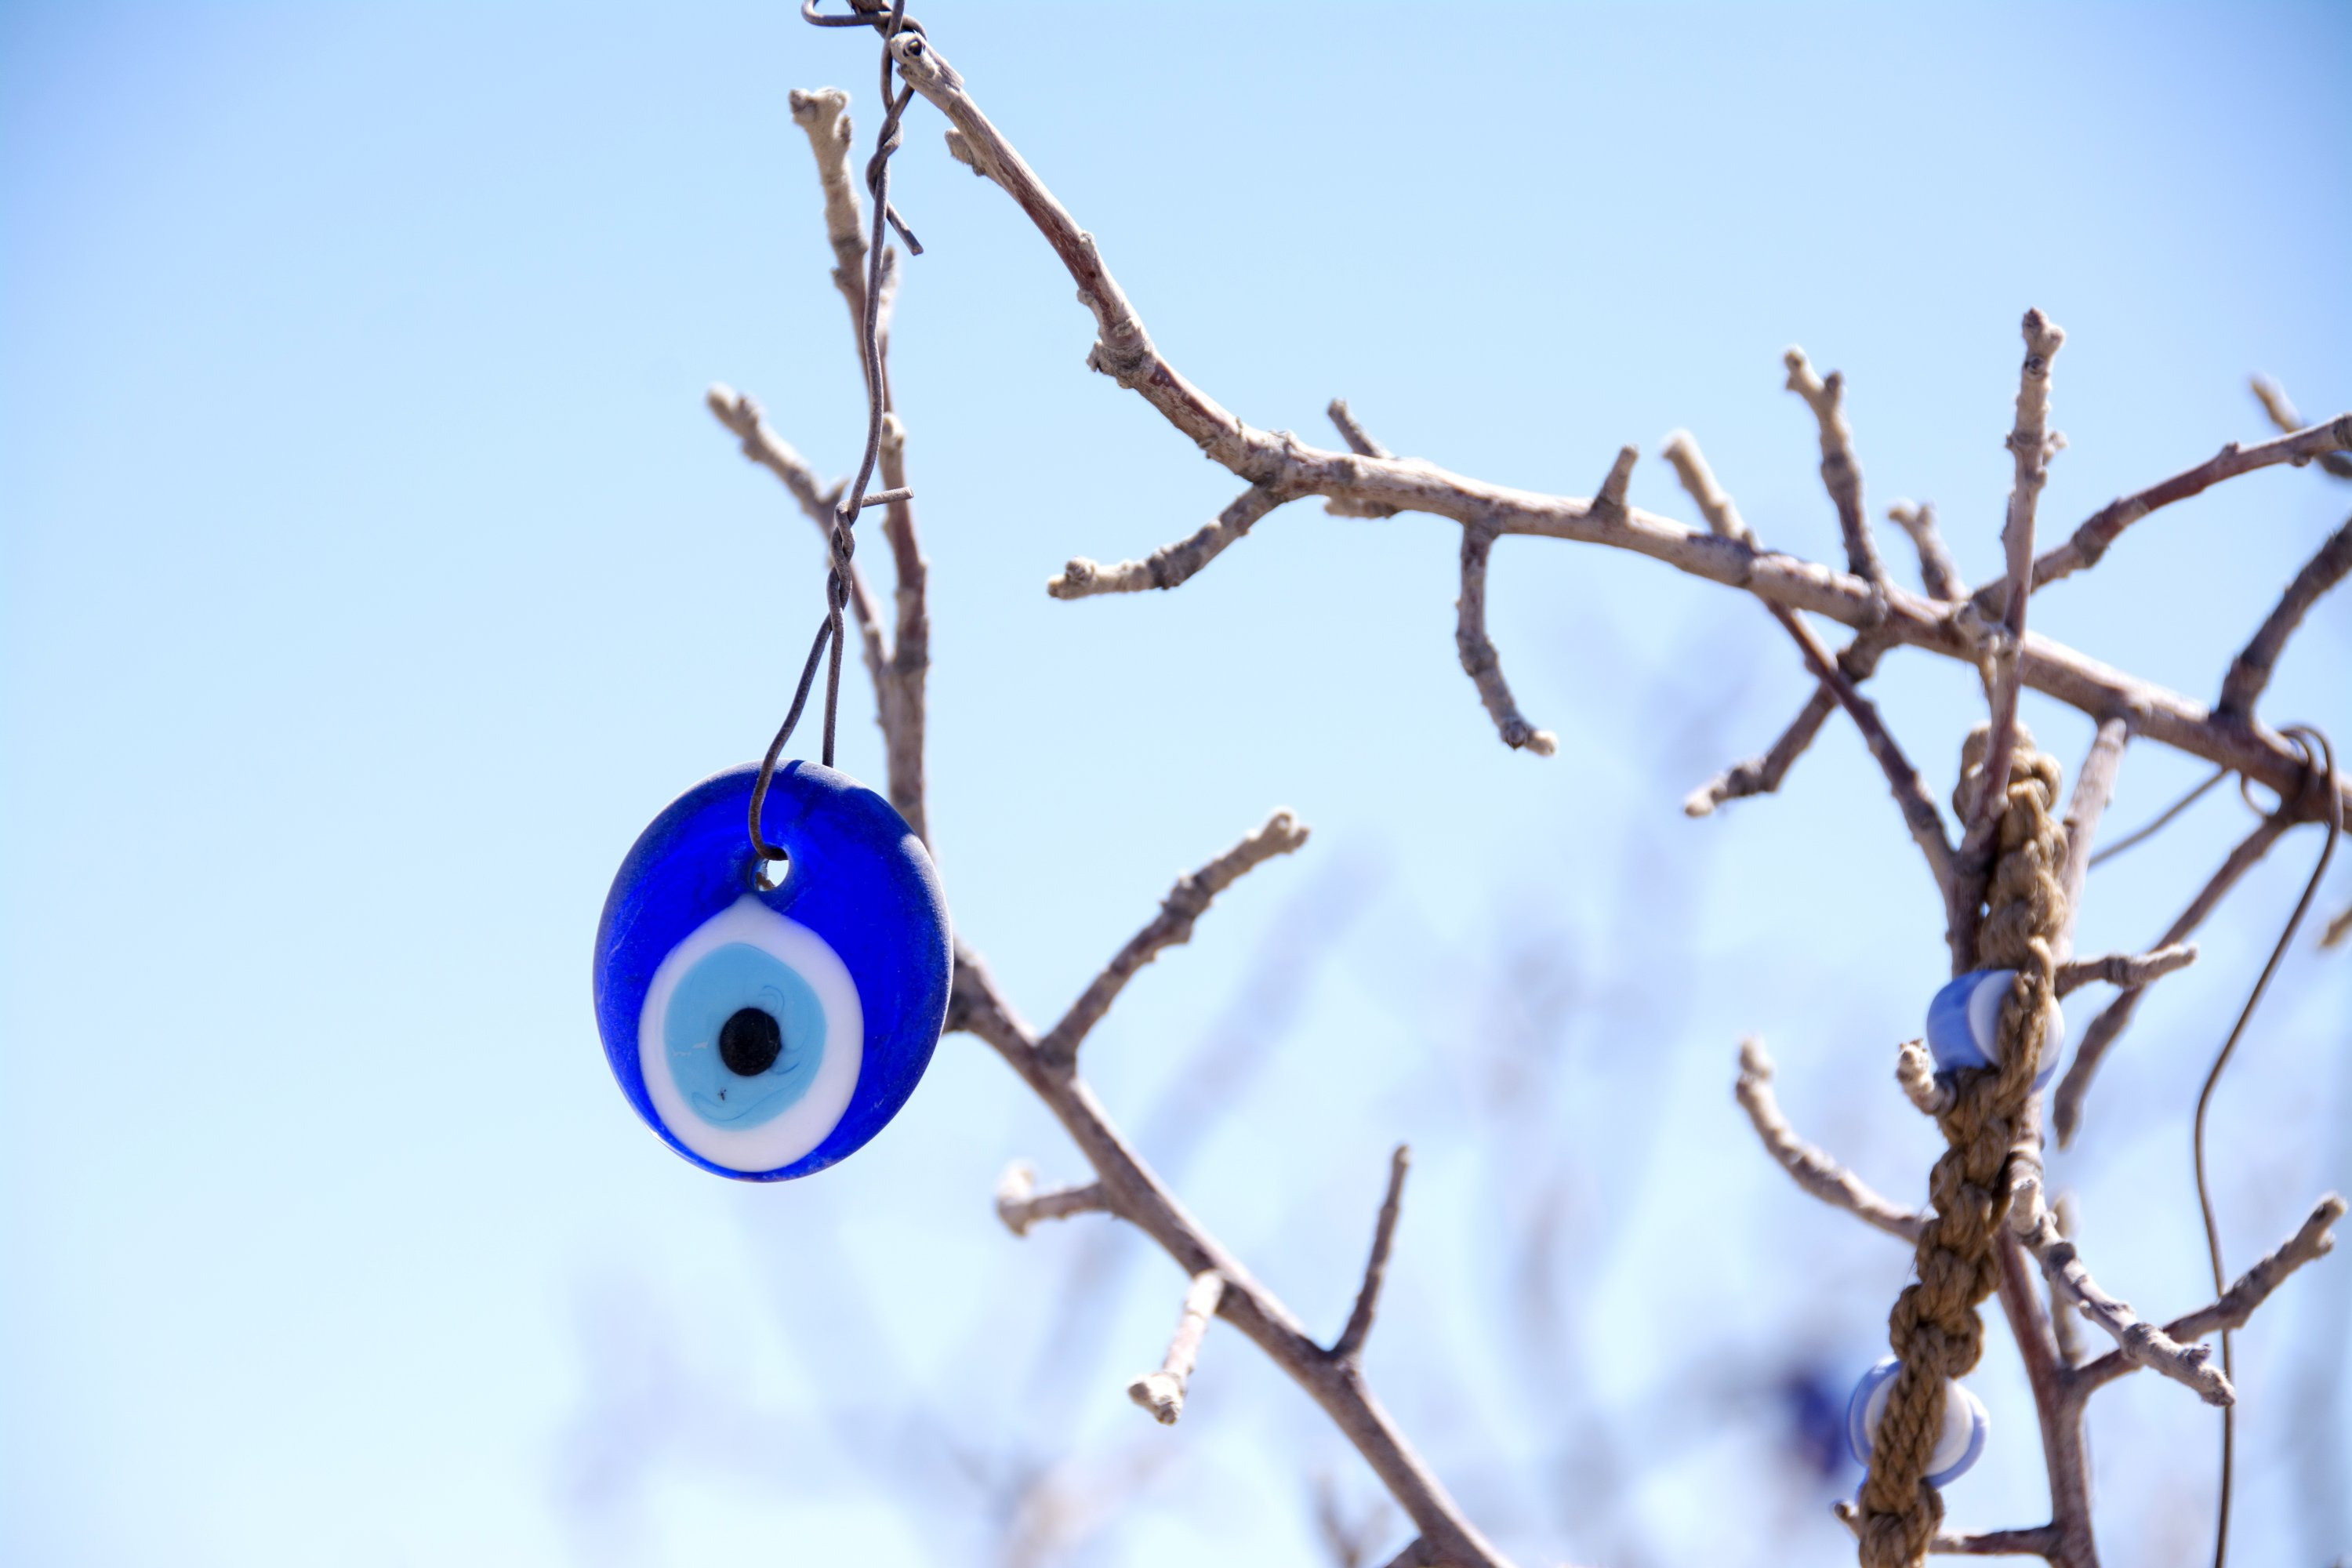 The evil eye can also be seen hanging in trees. (Shutterstock Photo)